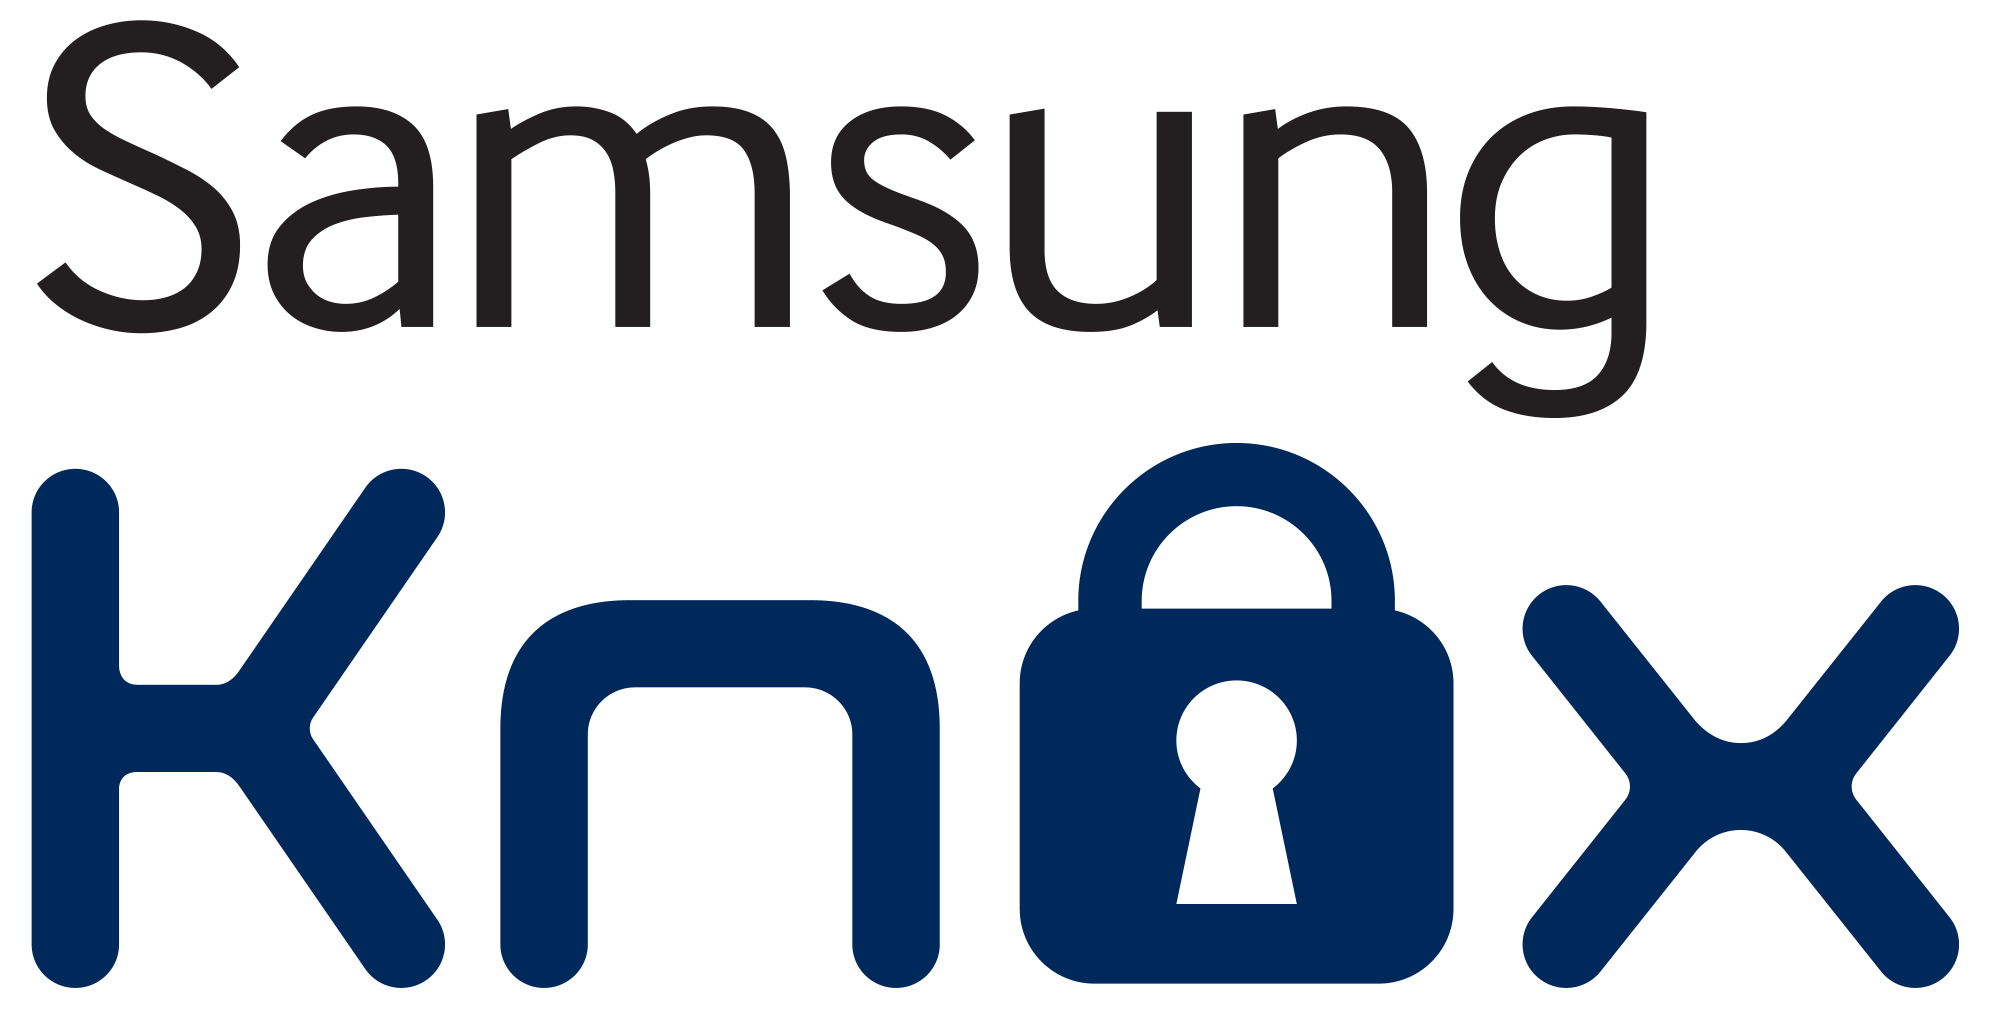 Samsung Security System